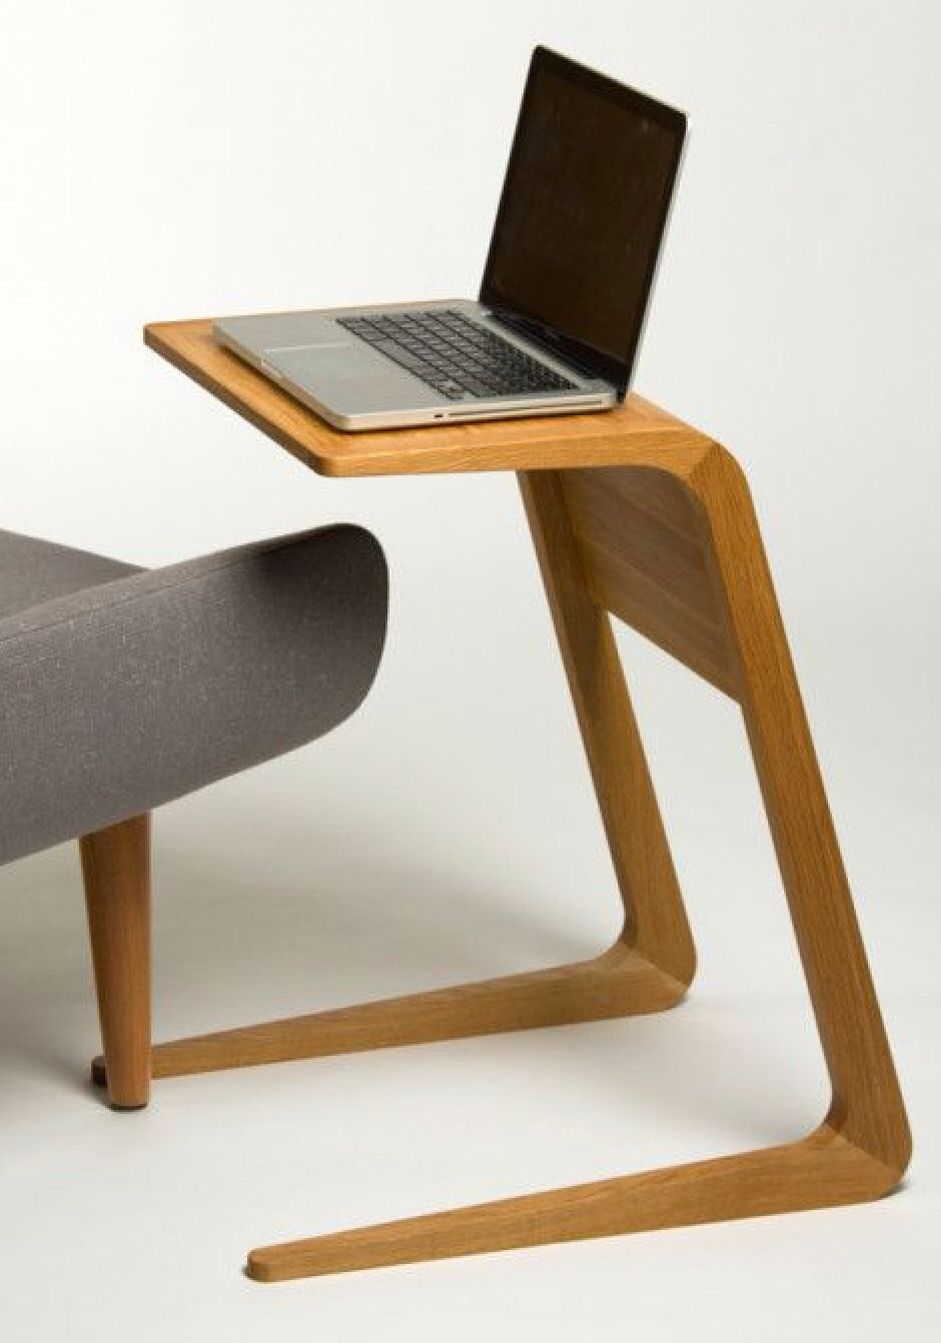 Pin By Creatorvox On Idees Meubles Et Accessoires Furniture Adjustable Laptop Table Interior Furniture